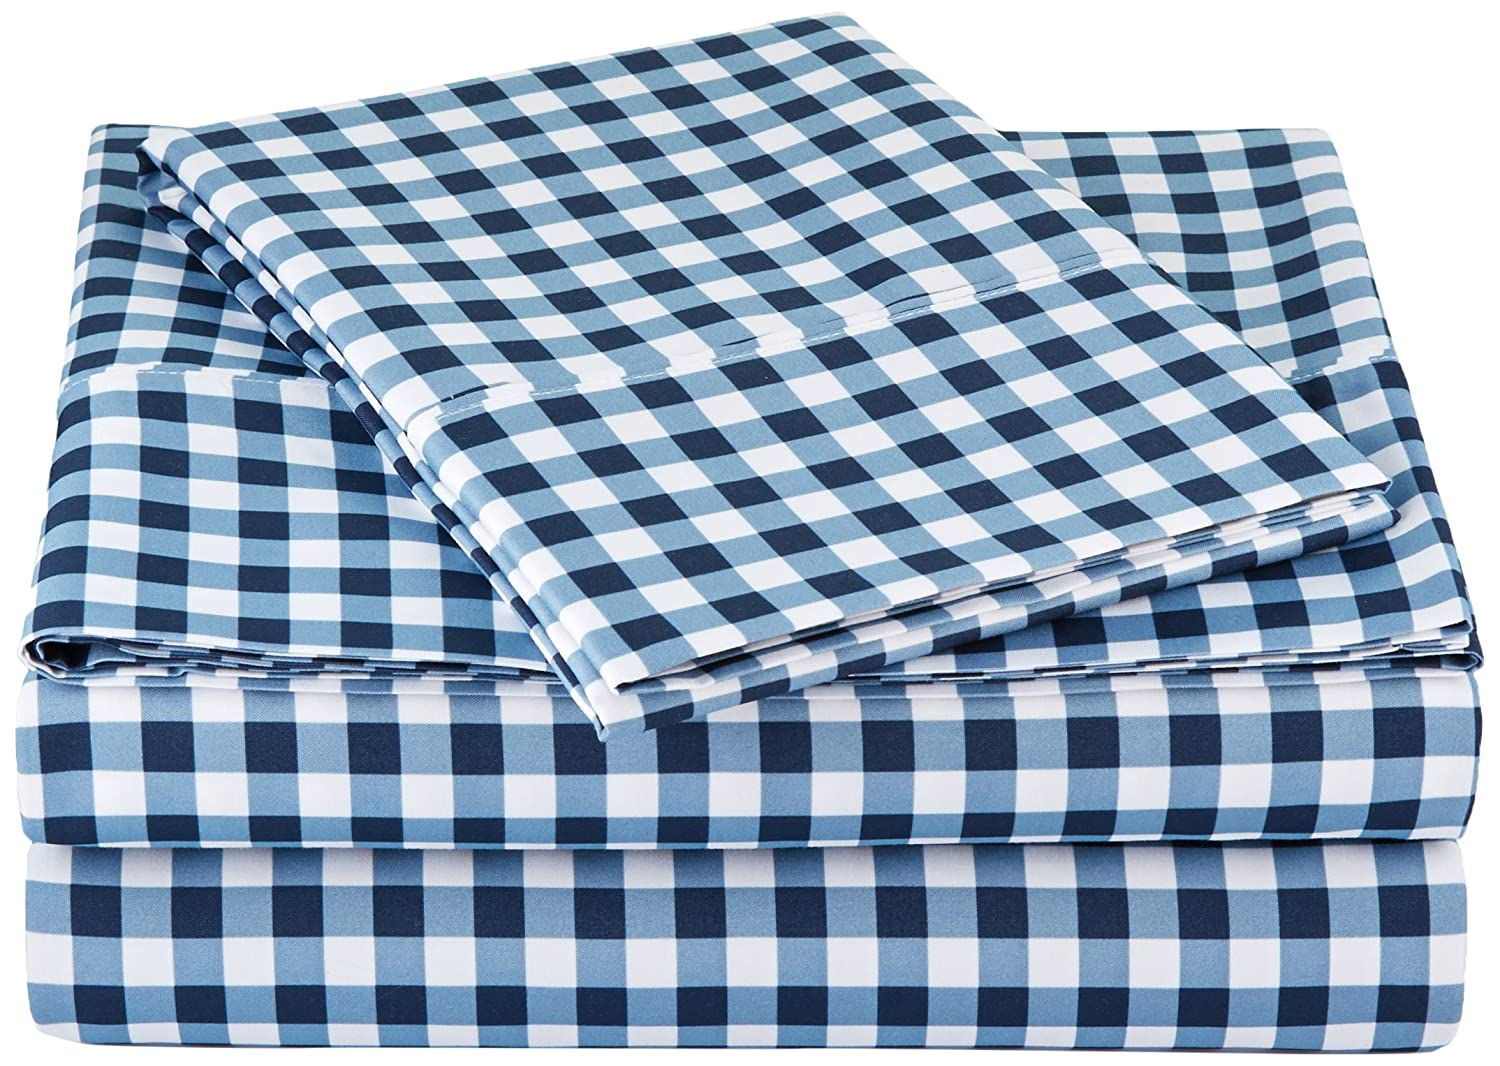 AmazonBasics Microfiber Sheet Set - Twin Extra-Long, Gingham Plaid